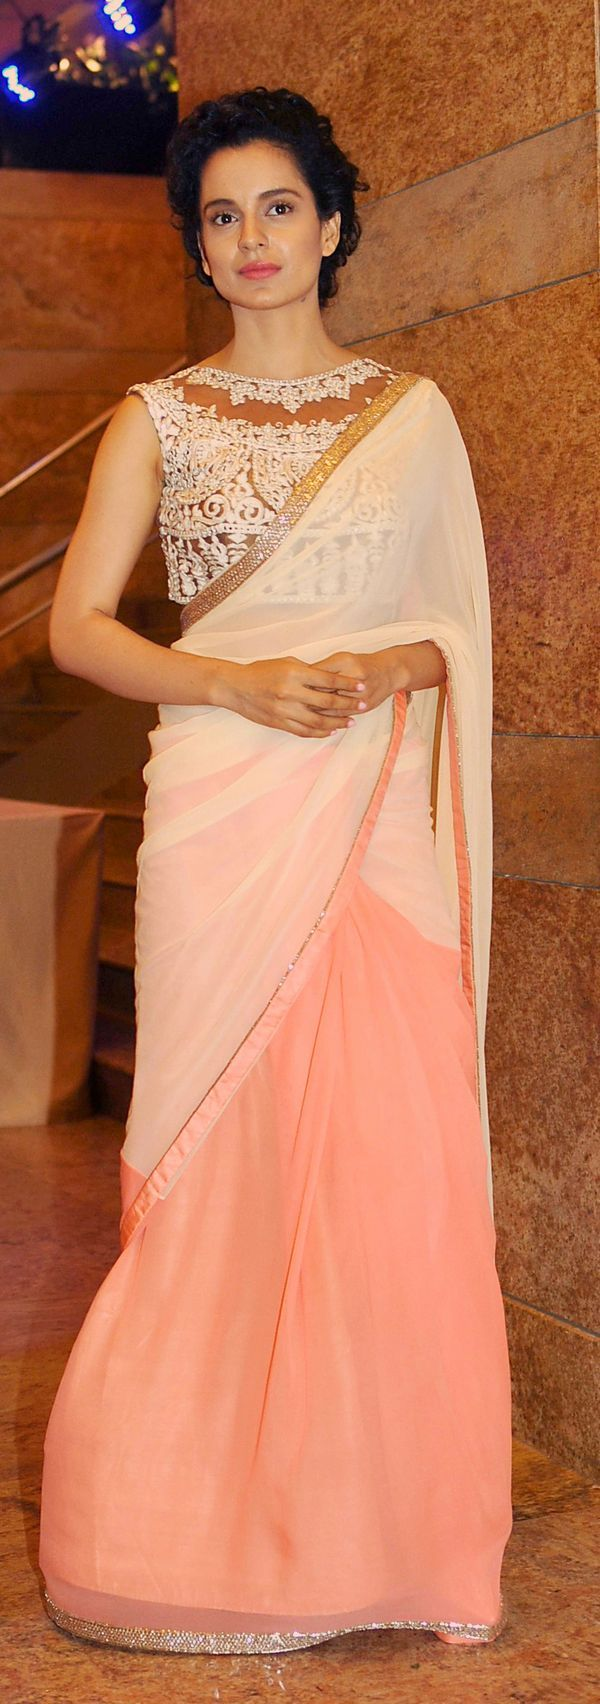 Kangana Ranaut looked statuesque in this sari #Style #Bollywood #Fashion #Beauty #saree #sari #blouse #indian #outfit #fashion #style #desi #designer #wedding #gorgeous #beautiful